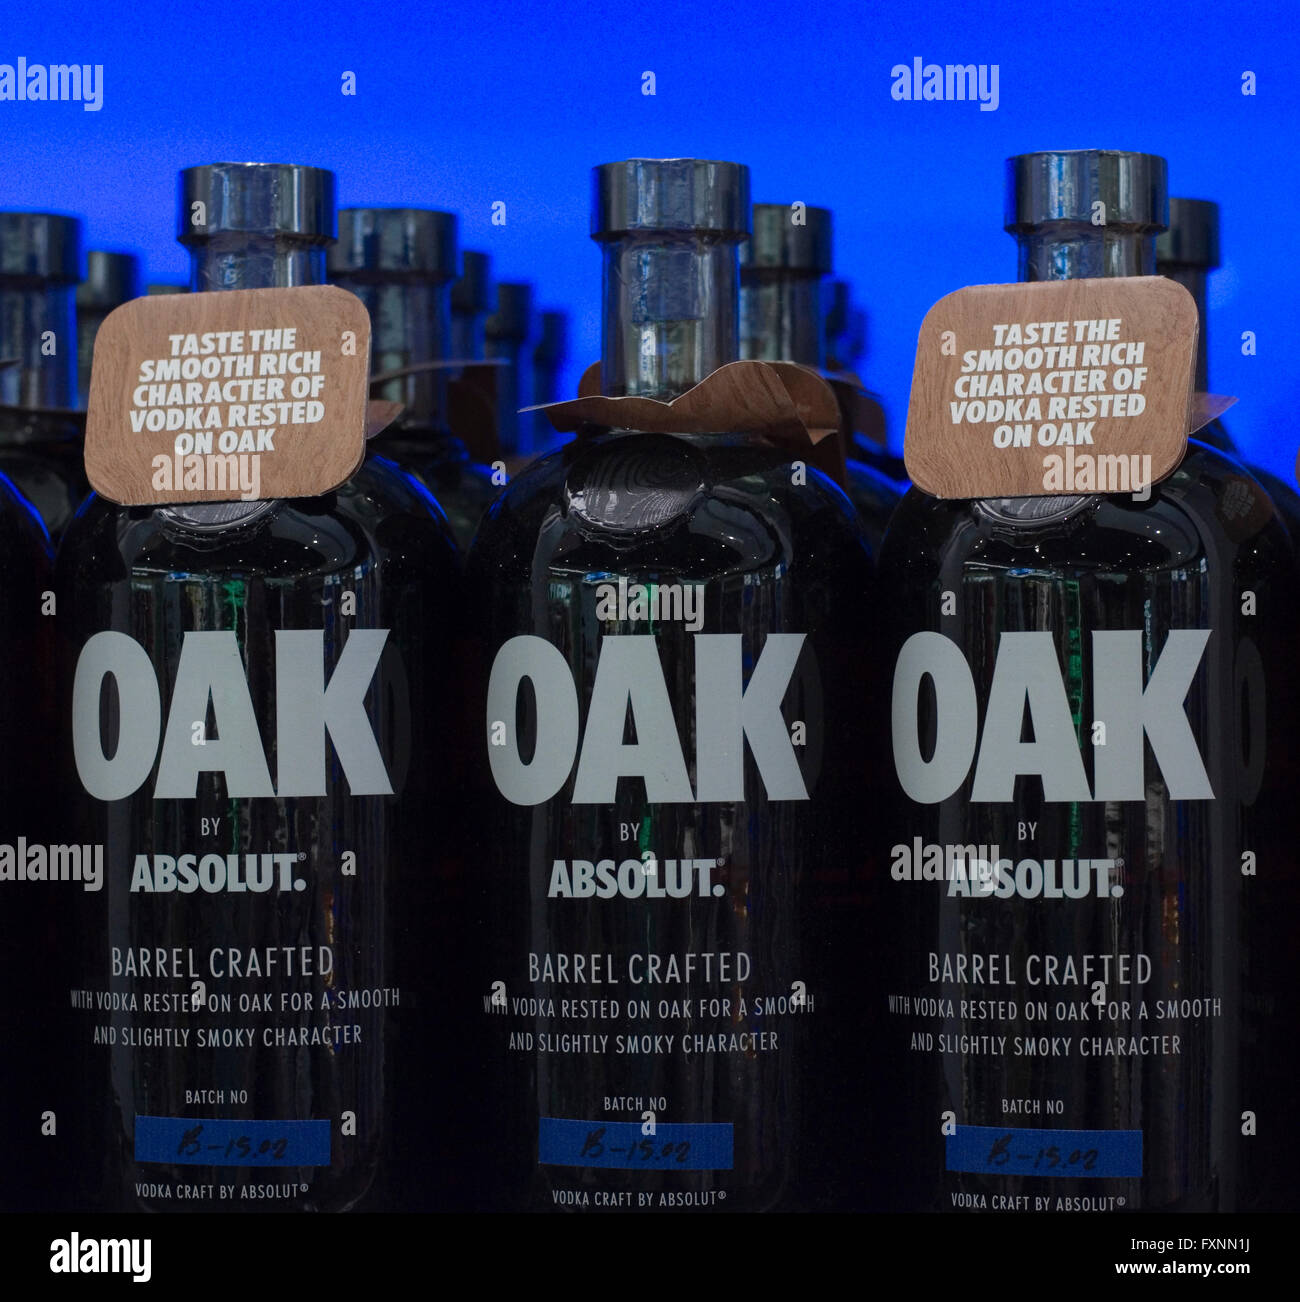 Absolut Vodka Oak.  Bottles on display against a blue illuminated background. Stock Photo